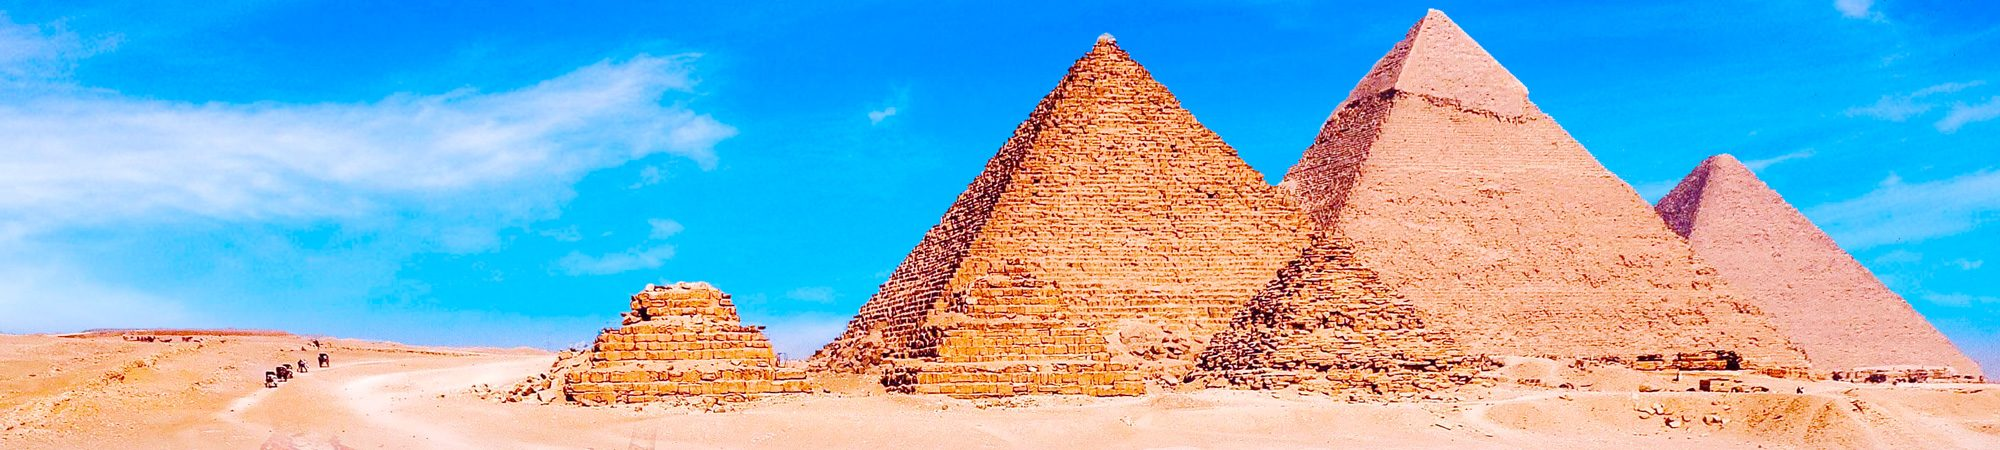 Giza Pyramids Complex - Egypt Tours2019-2020-2021-2022 - Trips In Egypt